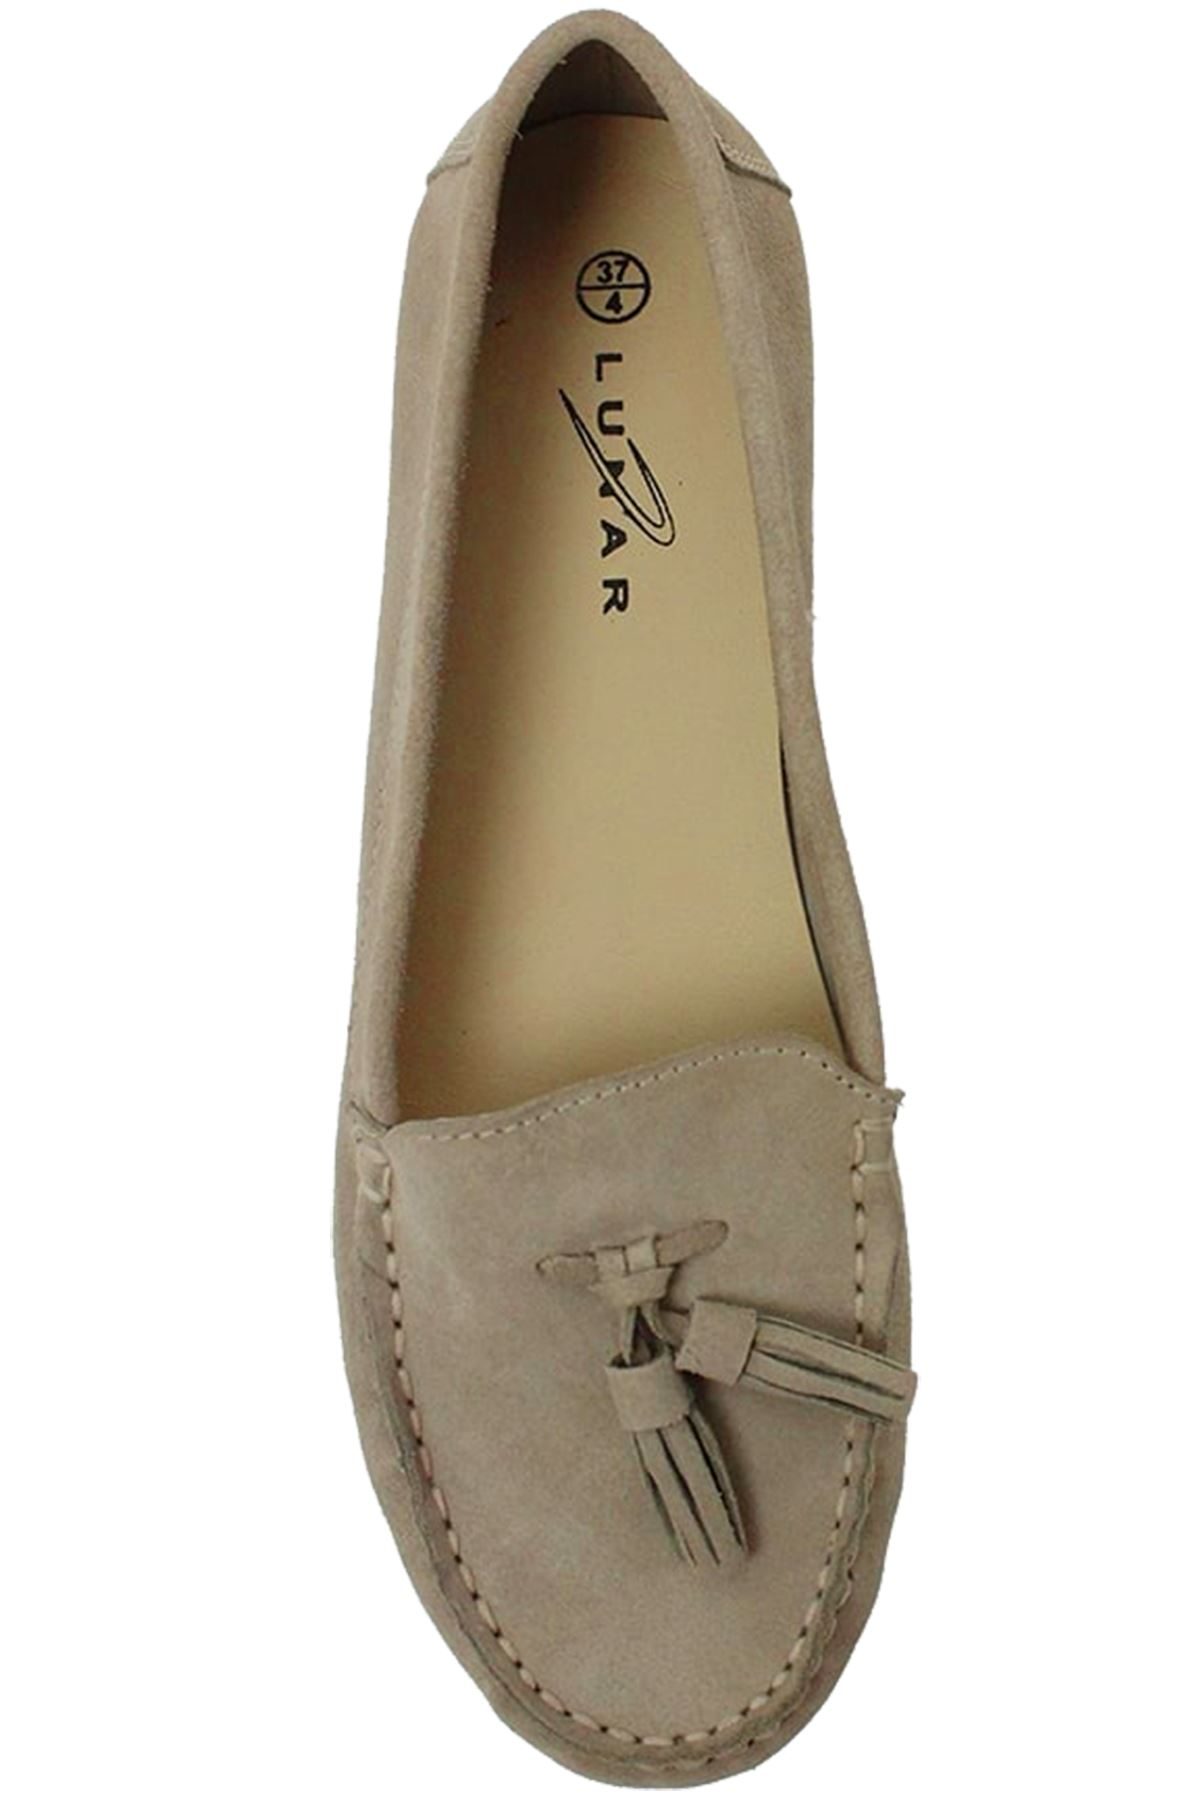 FLH598 Morris Leather Donna Tassel Classic Suede Leather Morris Moccasin Shoes Loafers e27f3e